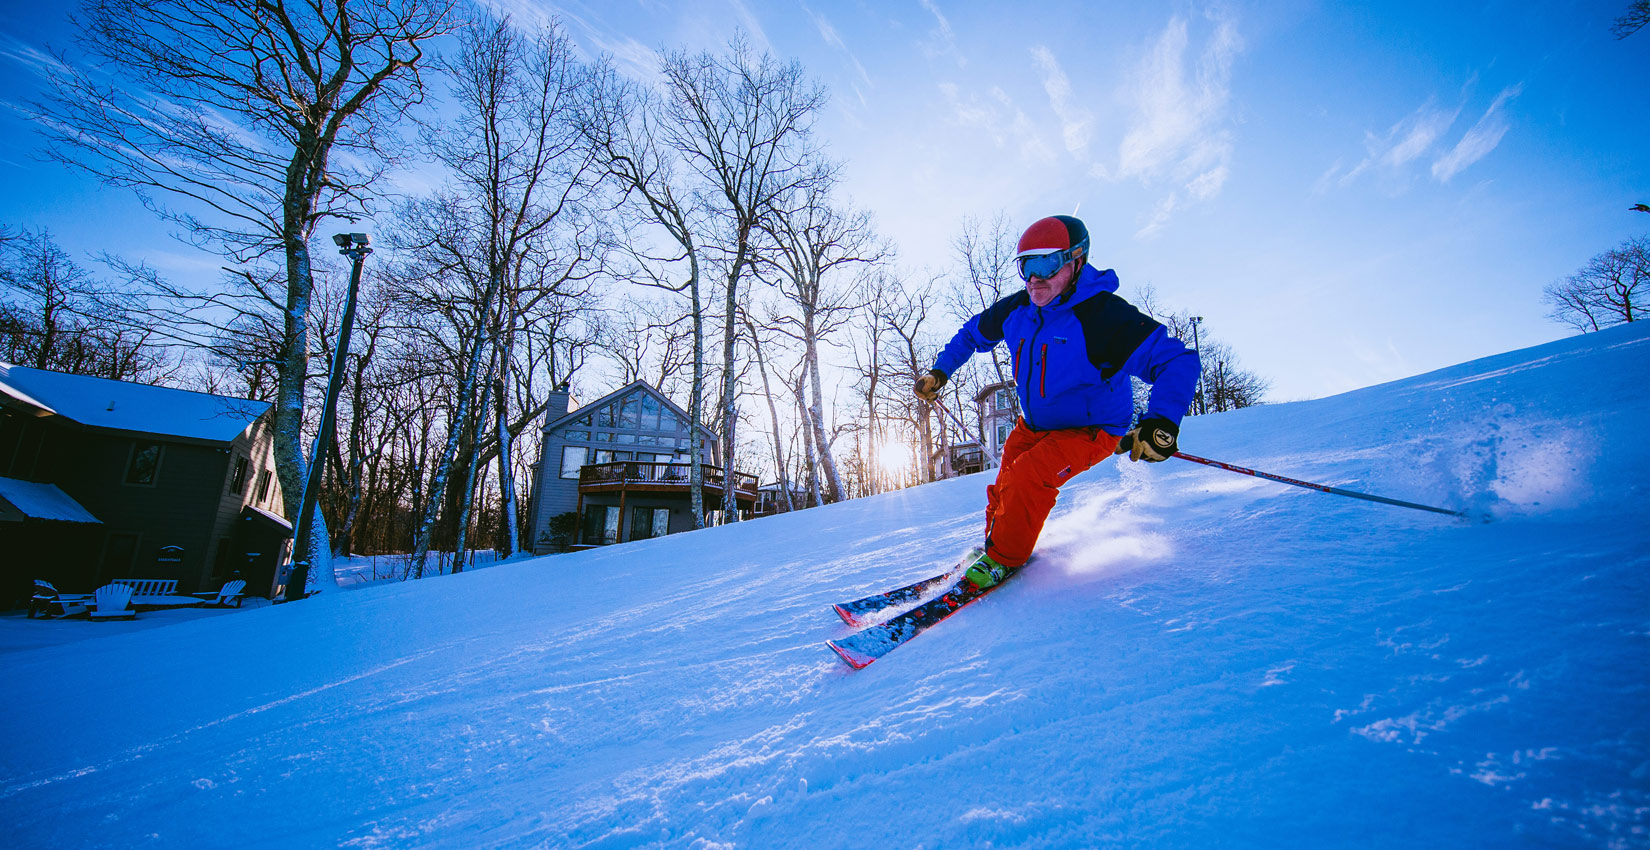 skiing and snowboarding at Wintergreen Resort in virginia